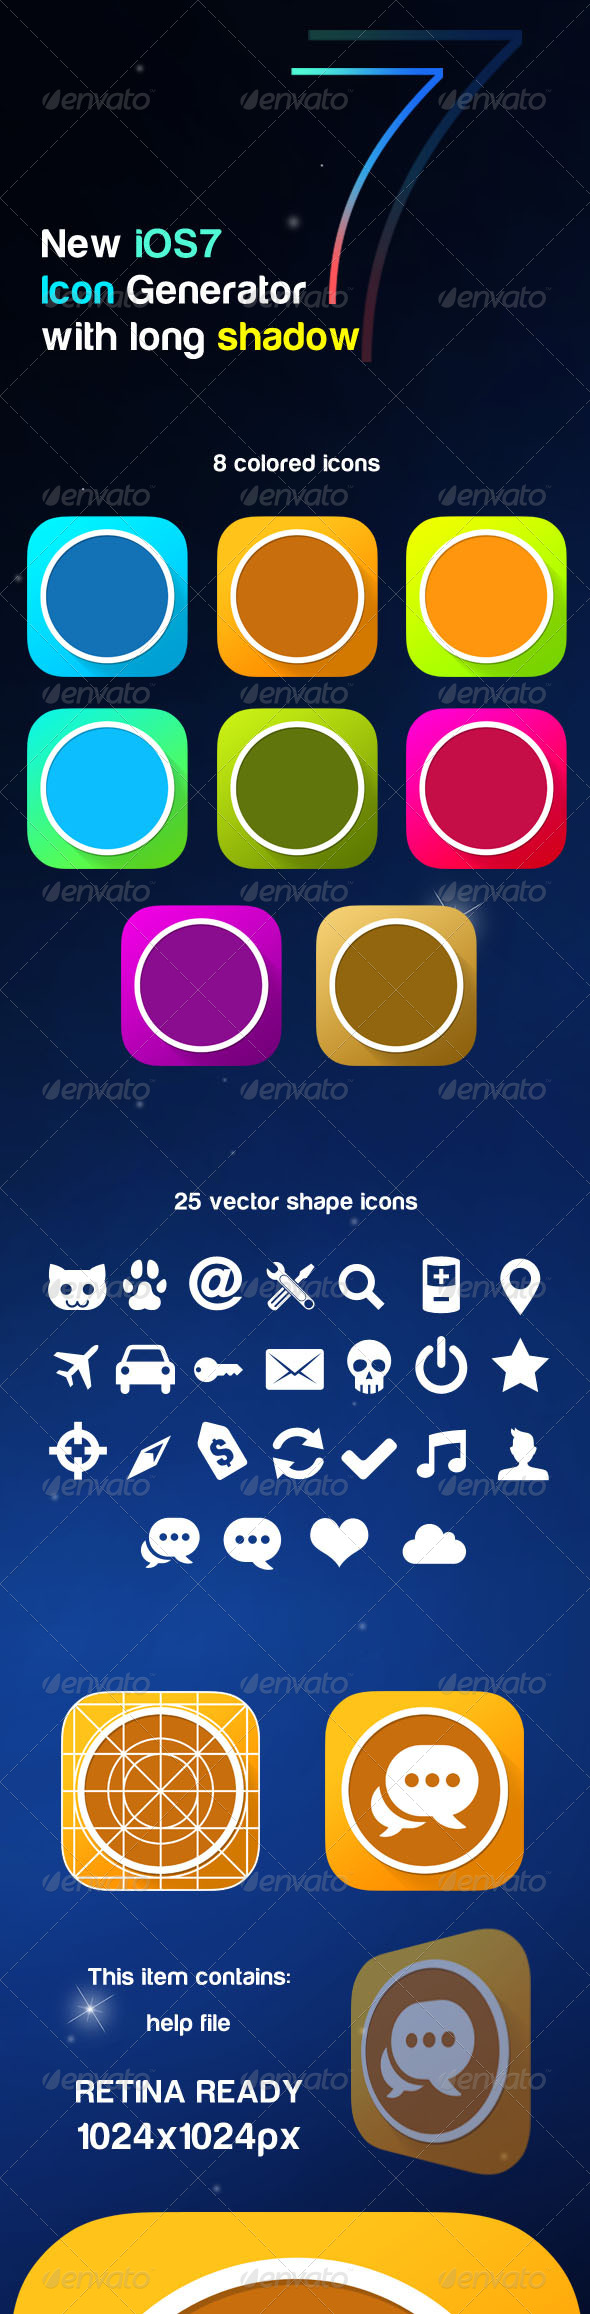 GraphicRiver New iOS7 Icon Generator with Long Shadow 5341059